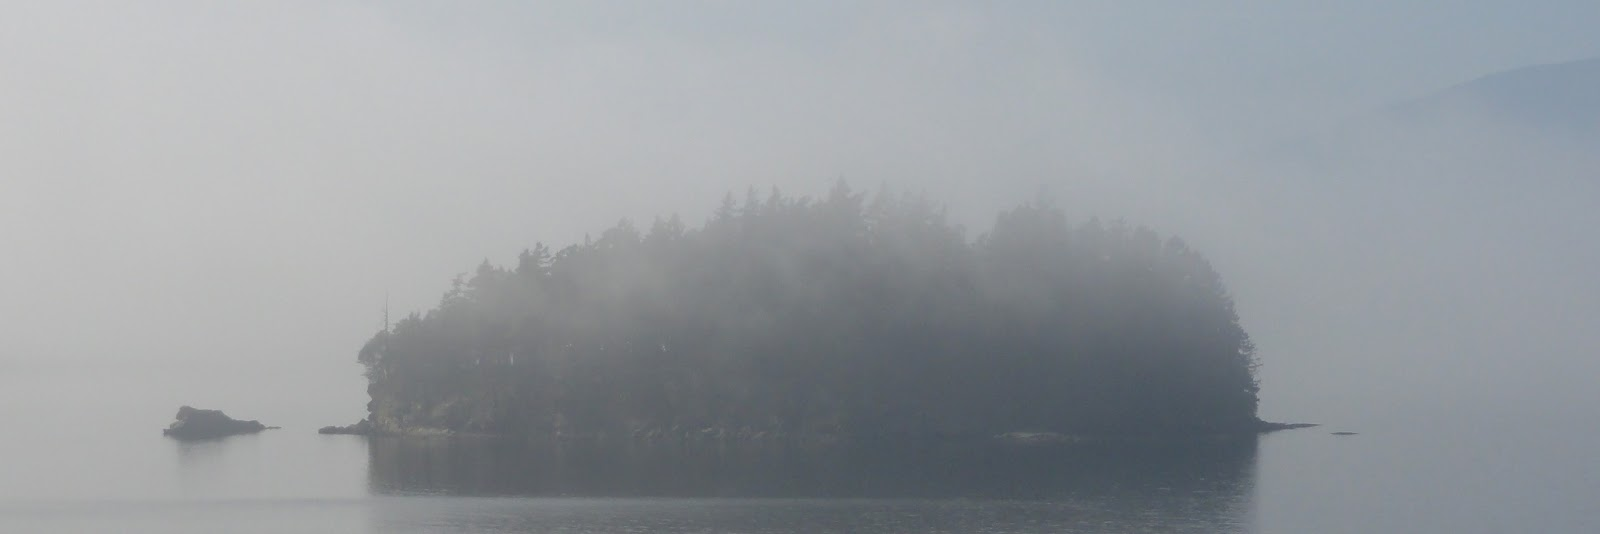 Chuckanut island in the fog off the coast of Bellingham, near the Canadian border